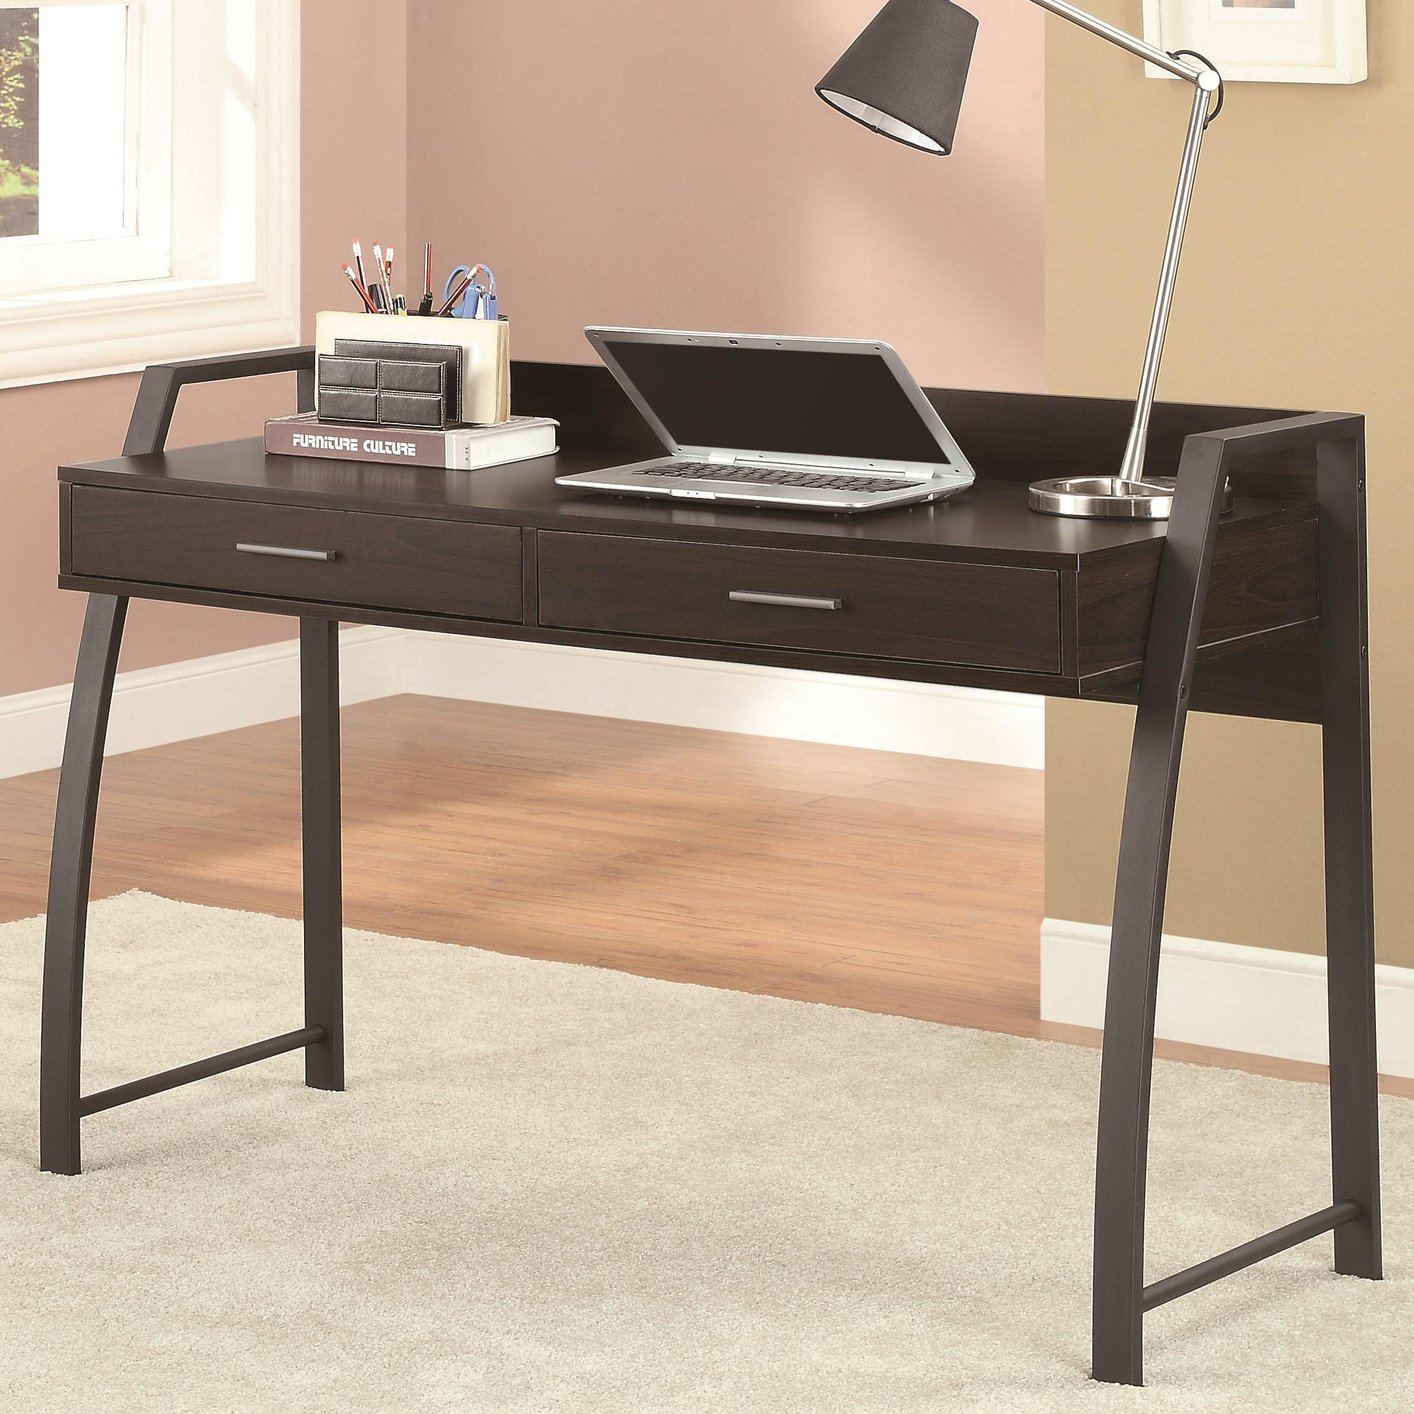 Coaster 801141 black metal office desk steal a sofa furniture outlet los angeles ca - Metal office desk ...